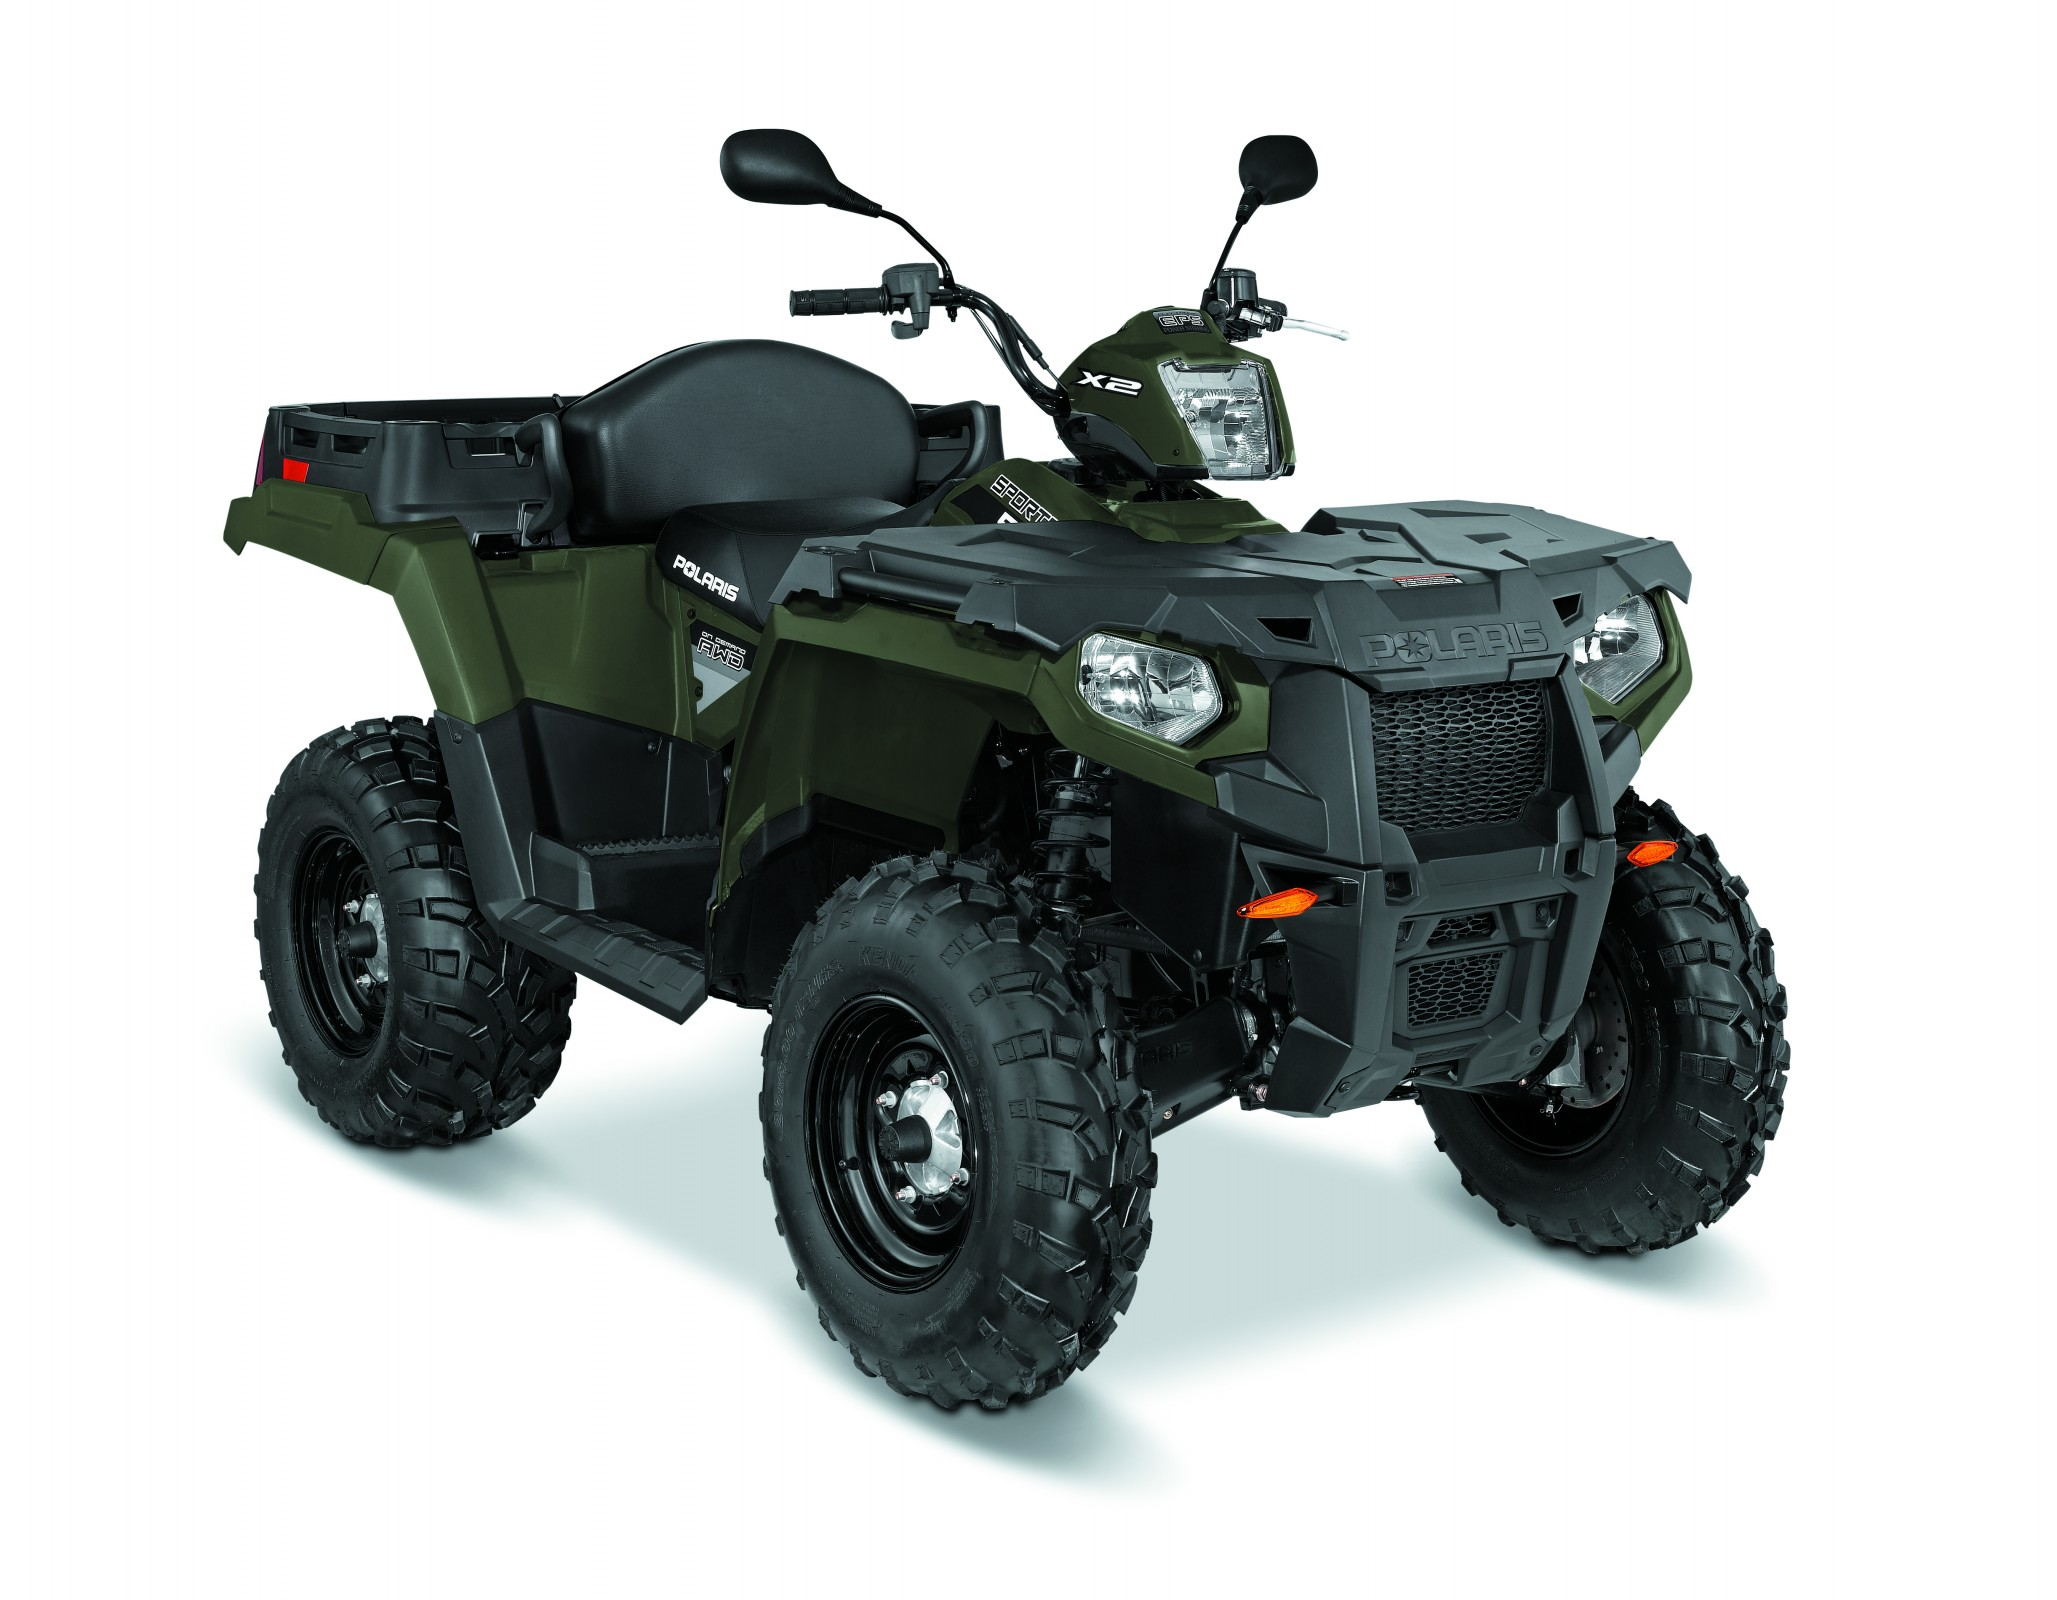 Sportsman 570 X2 EPS